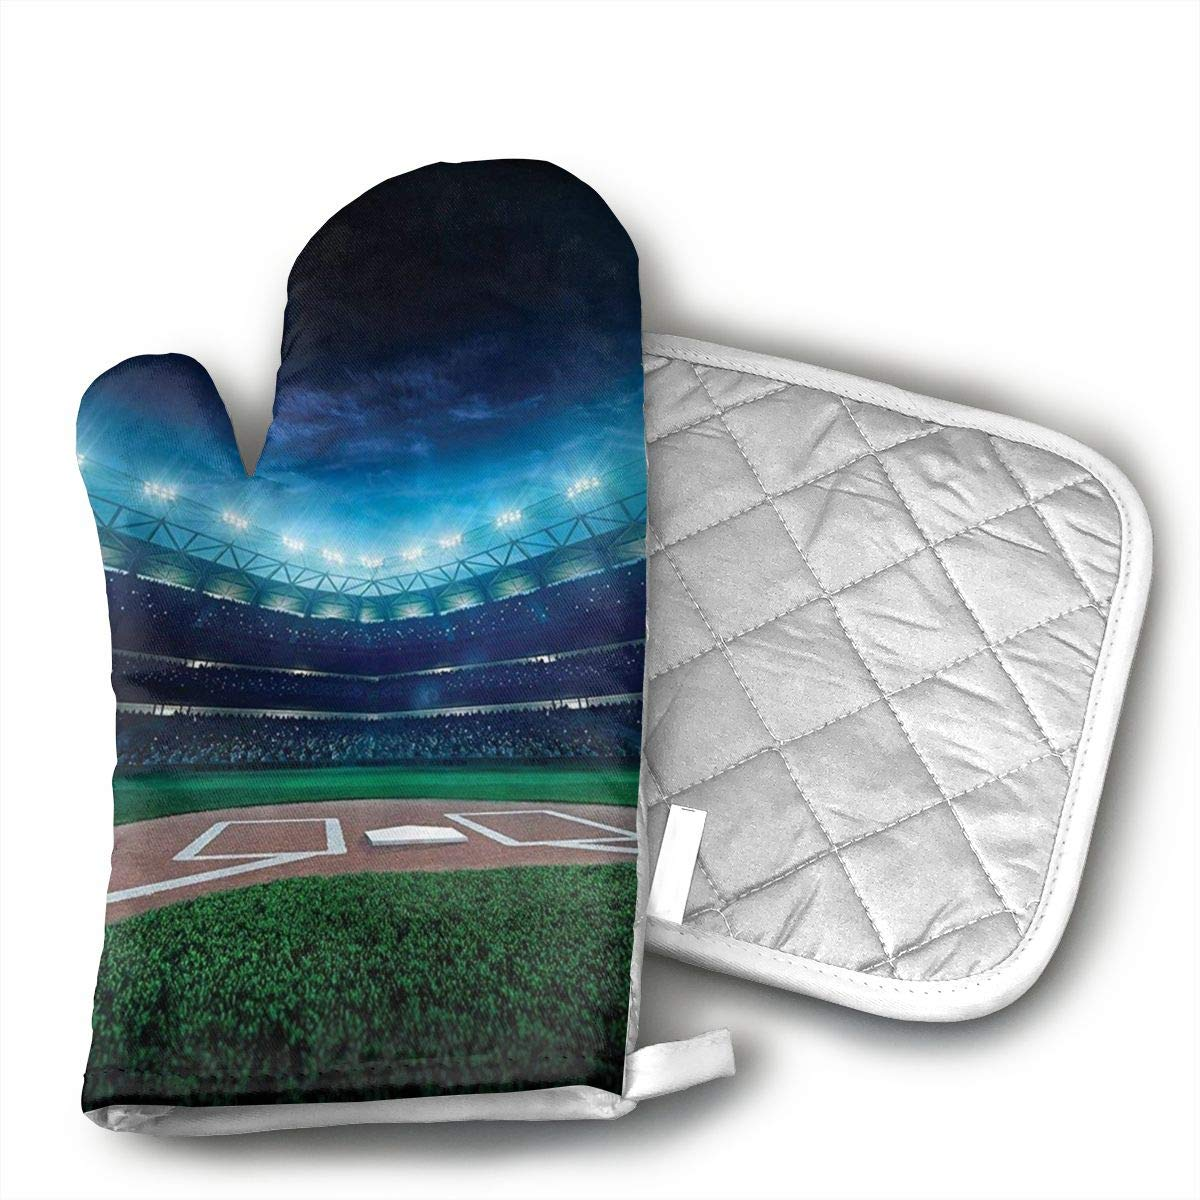 Wiqo9 Professional Baseball Field at Night with Spotlights Playground Stadium League Theme Oven Mitts and Pot Holders Kitchen Mitten Cooking Gloves,Cooking, Baking, BBQ.